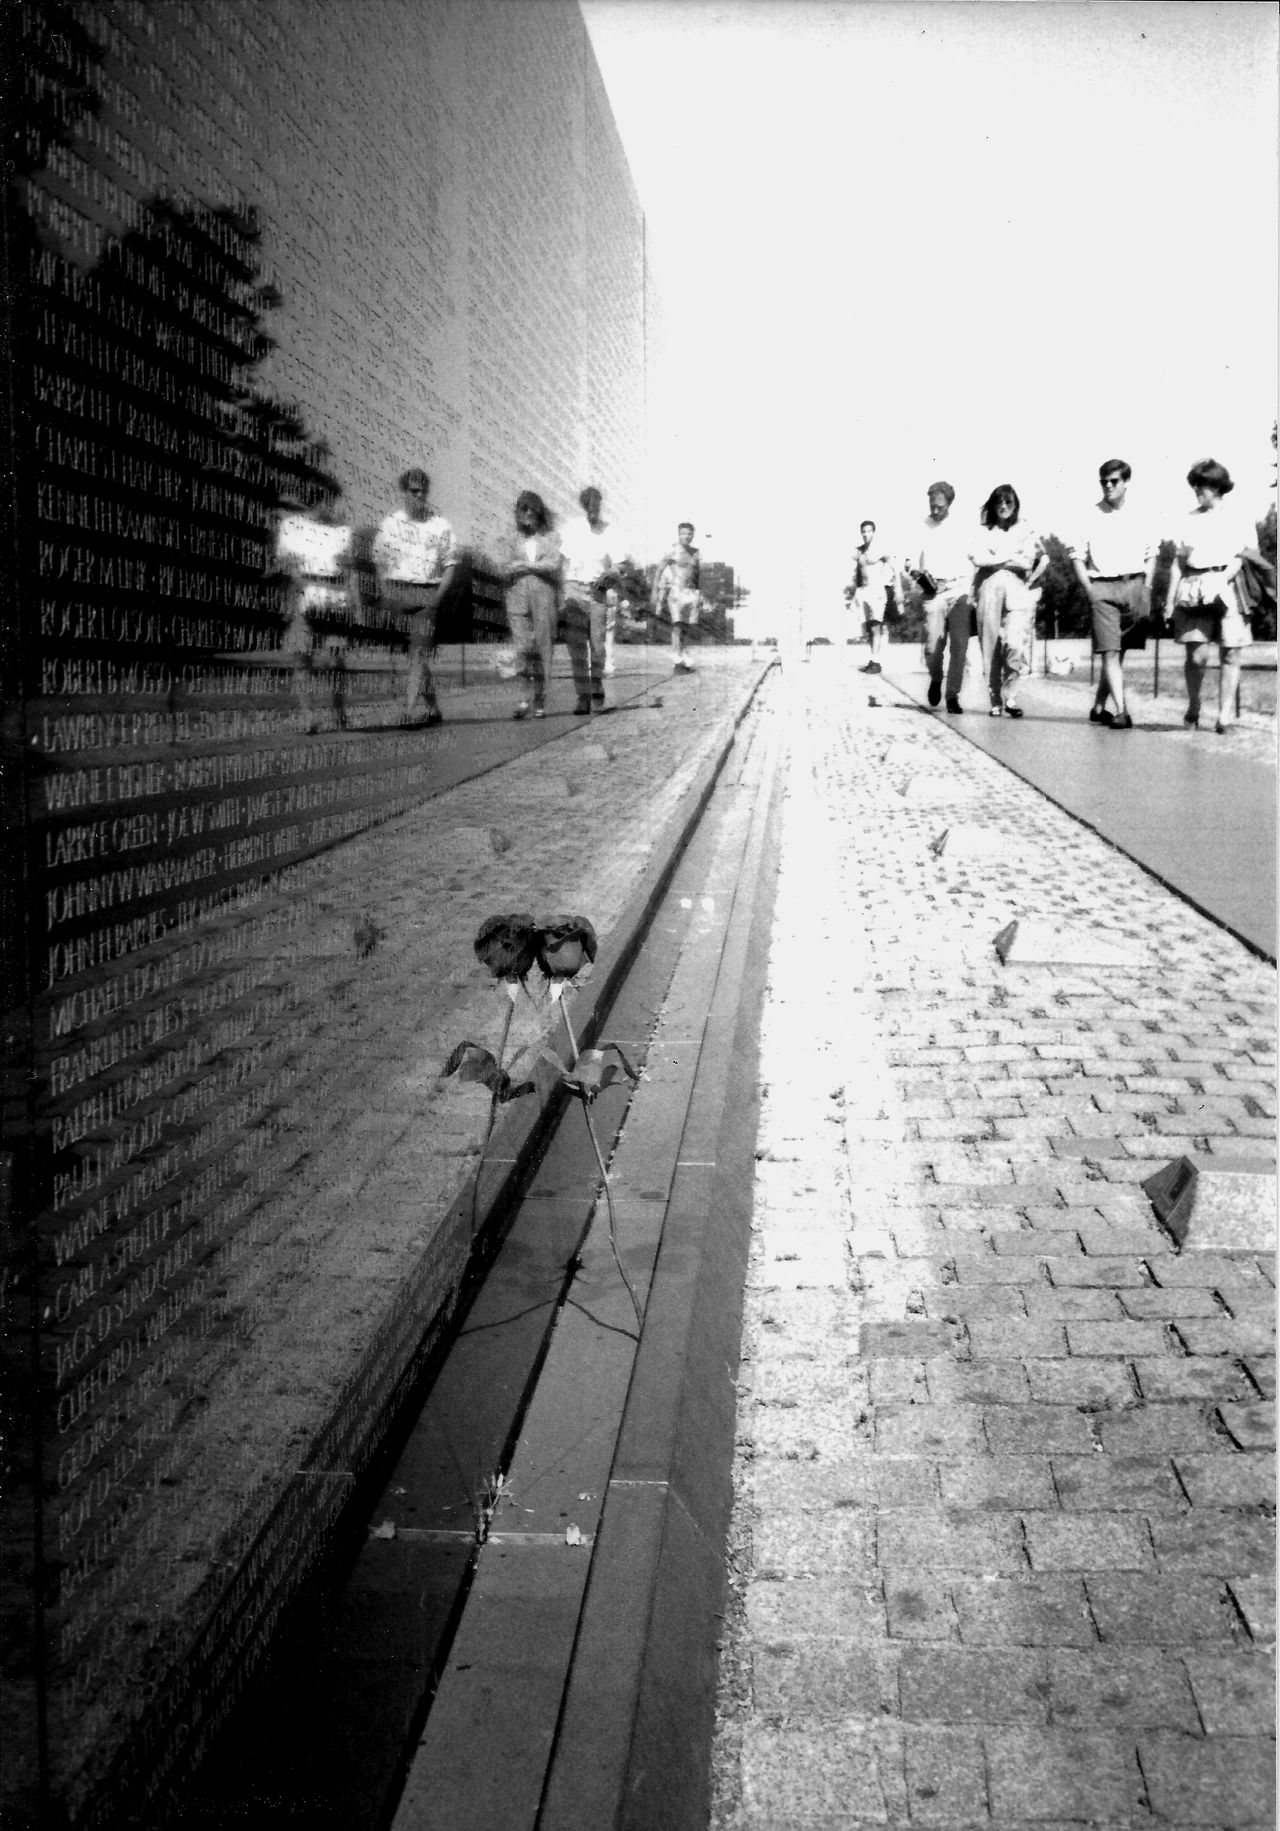 sombre 35mm Film Analogue Photography B&w Street Photography Capital Cities  Diminishing Perspective Everybodystreet Film Photography Filmisnotdead Fine Art Photography In Loving Memory National Park Reflection Single Rose Sombre Mood Street Photography Symmetry Tourism Tourist Attraction  Urban Geometry Urban Landscape Vanishing Point Vietnam War Memorial Washington DC Low Angle Perspective